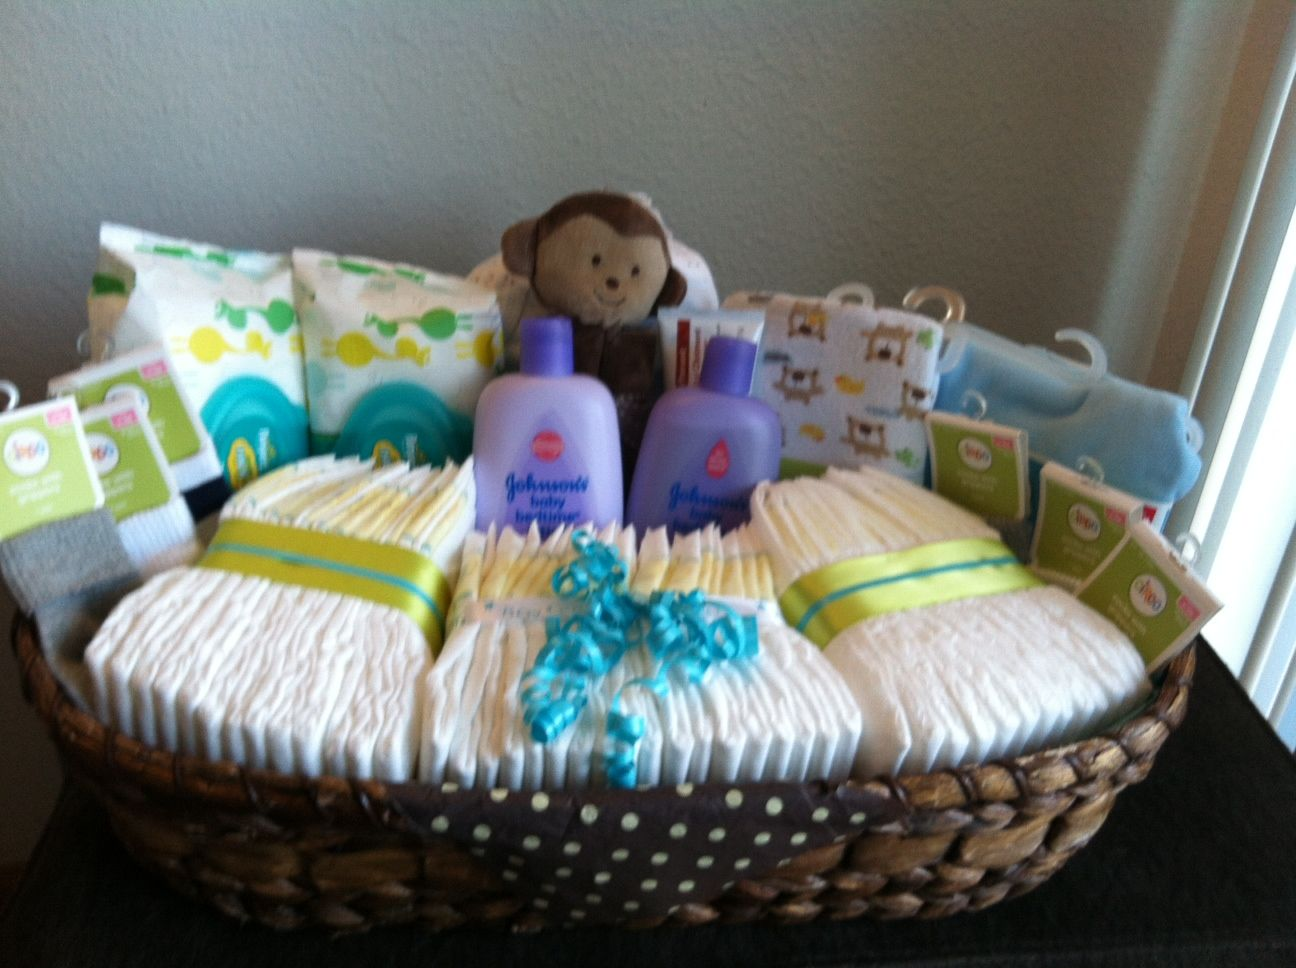 Baby Laundry Basket Gift Diy Baby Shower Gift Basket Line A Basket With